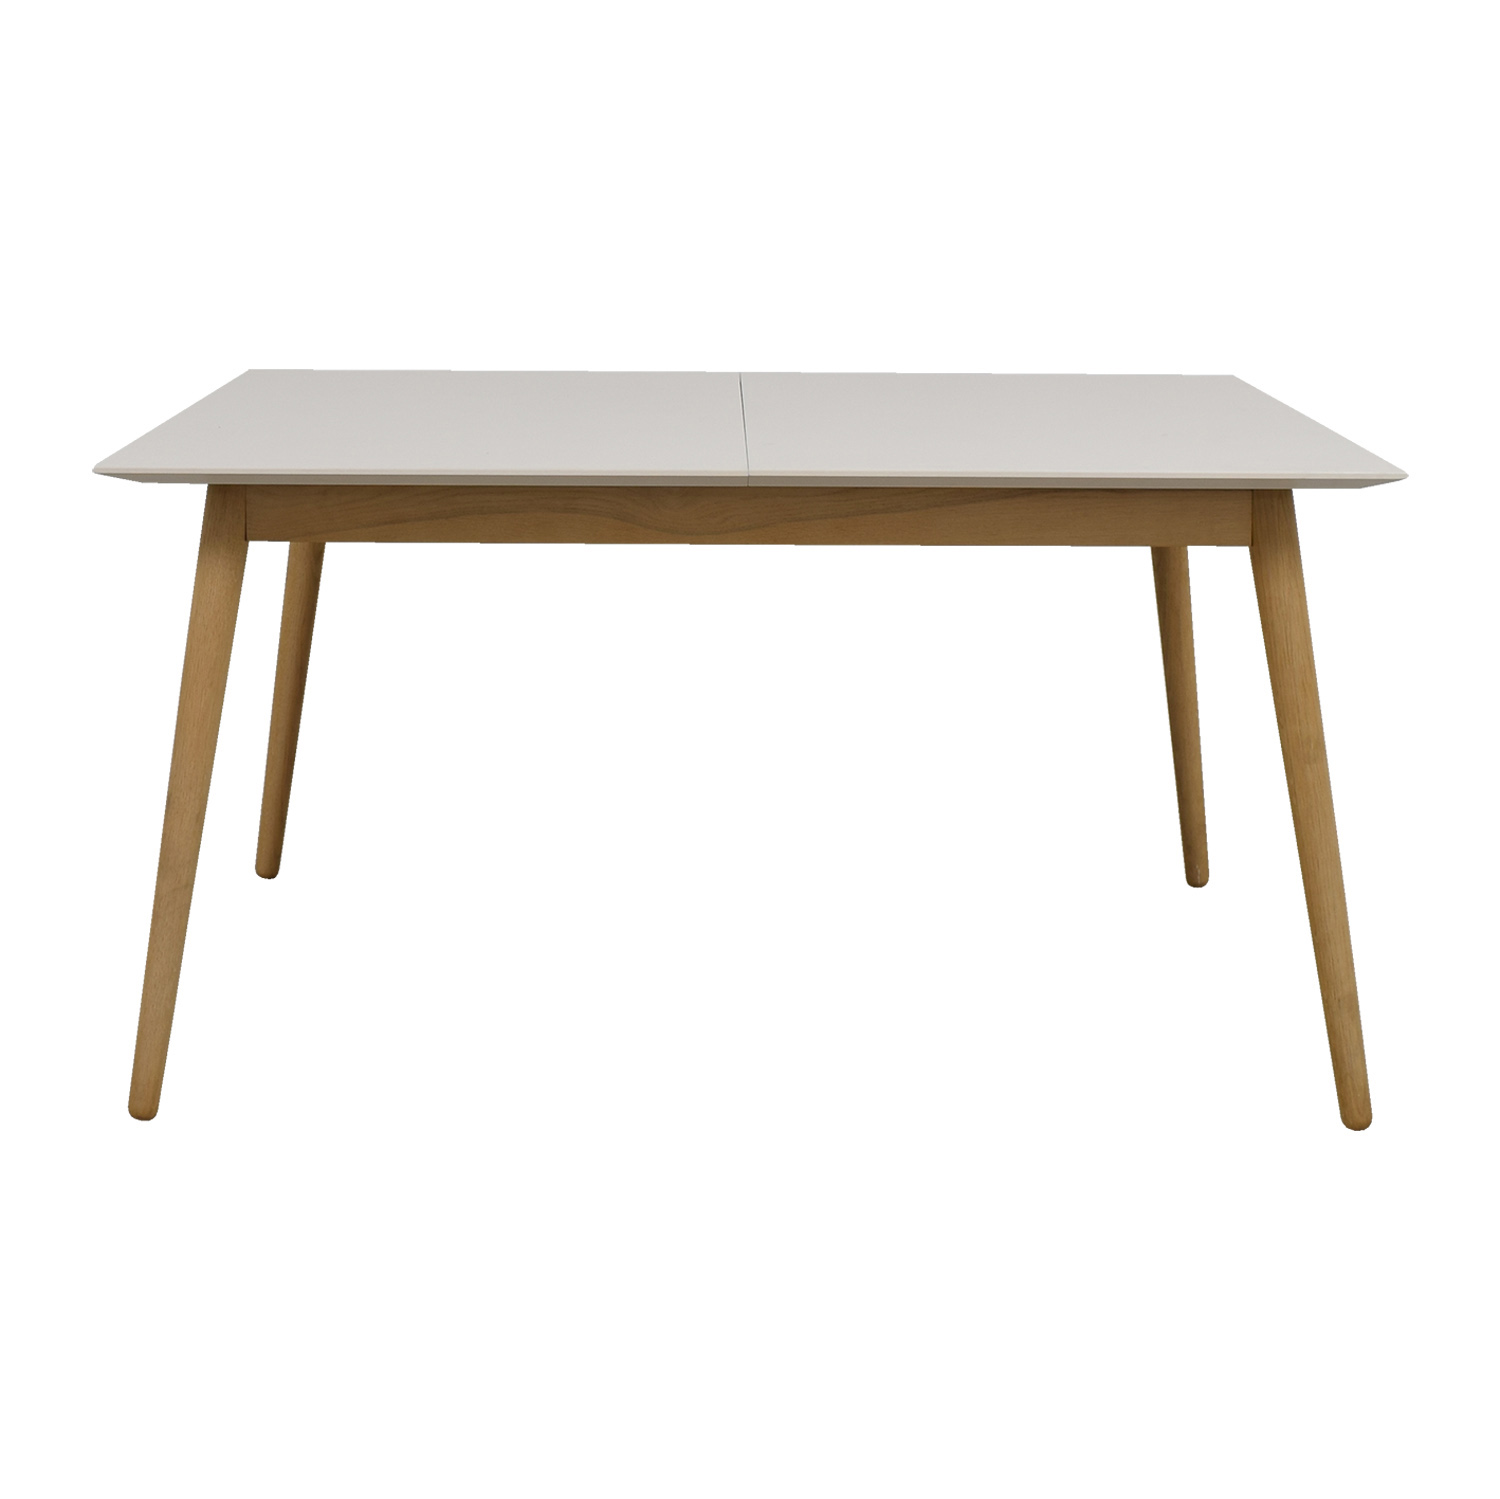 BoConcept White and Natural Wood Extendable Table BoConcept